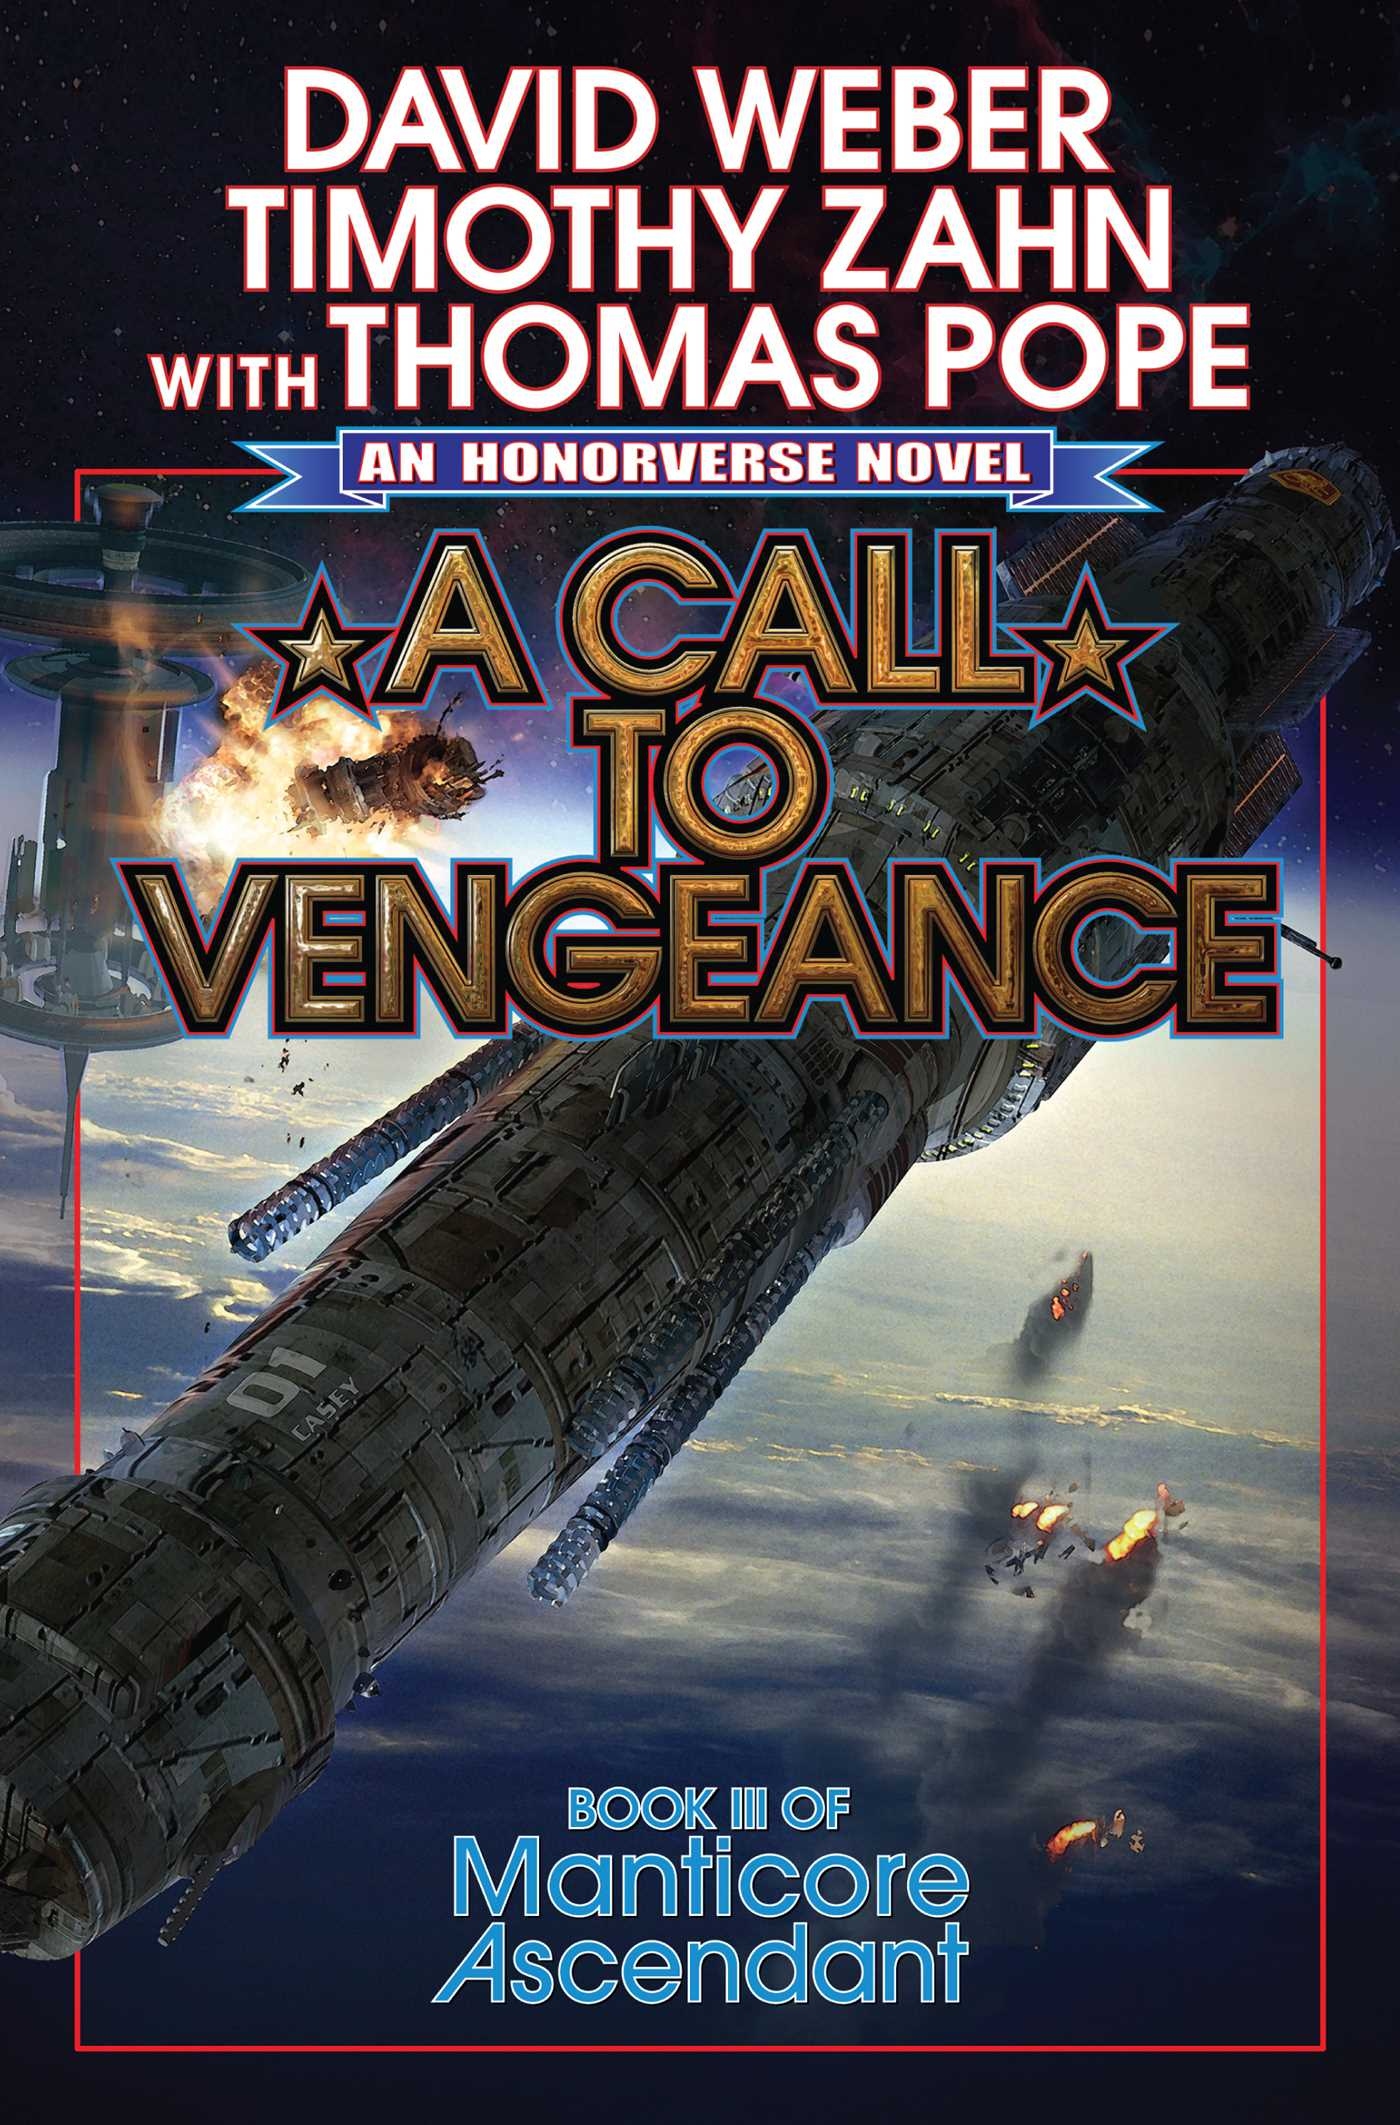 A call to vengeance 9781476782102 hr